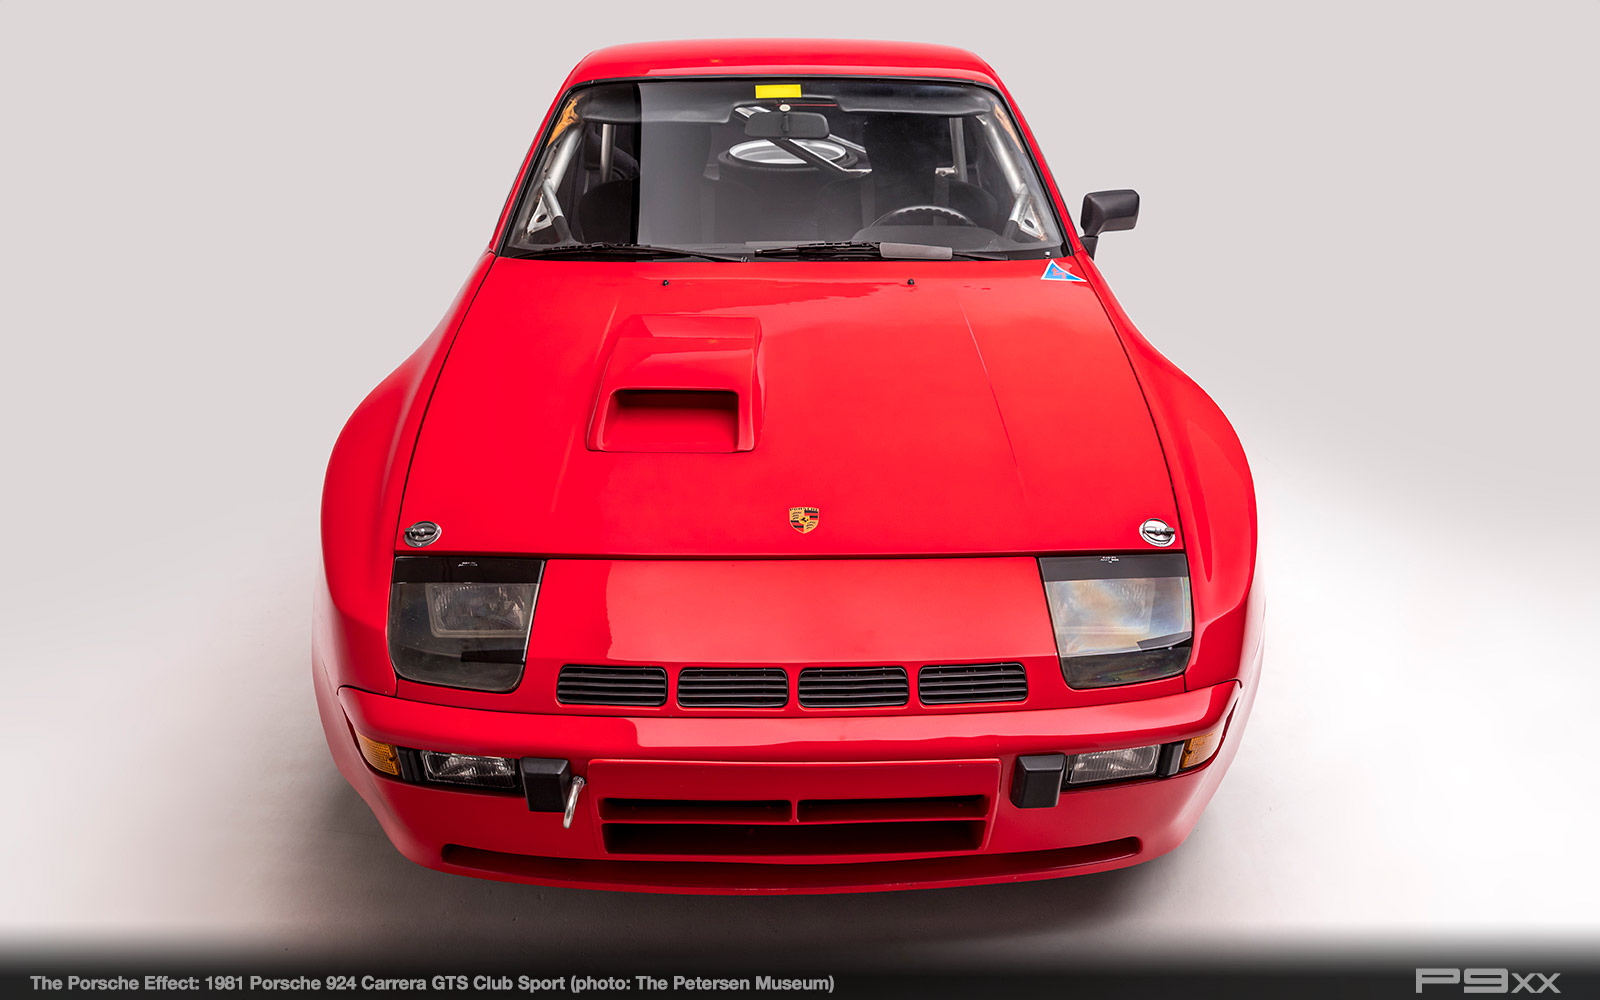 1981-924-Carrera-GTS-Club-Sport-Petersen-Automotive-Museum-The-Porsche-Effect-412